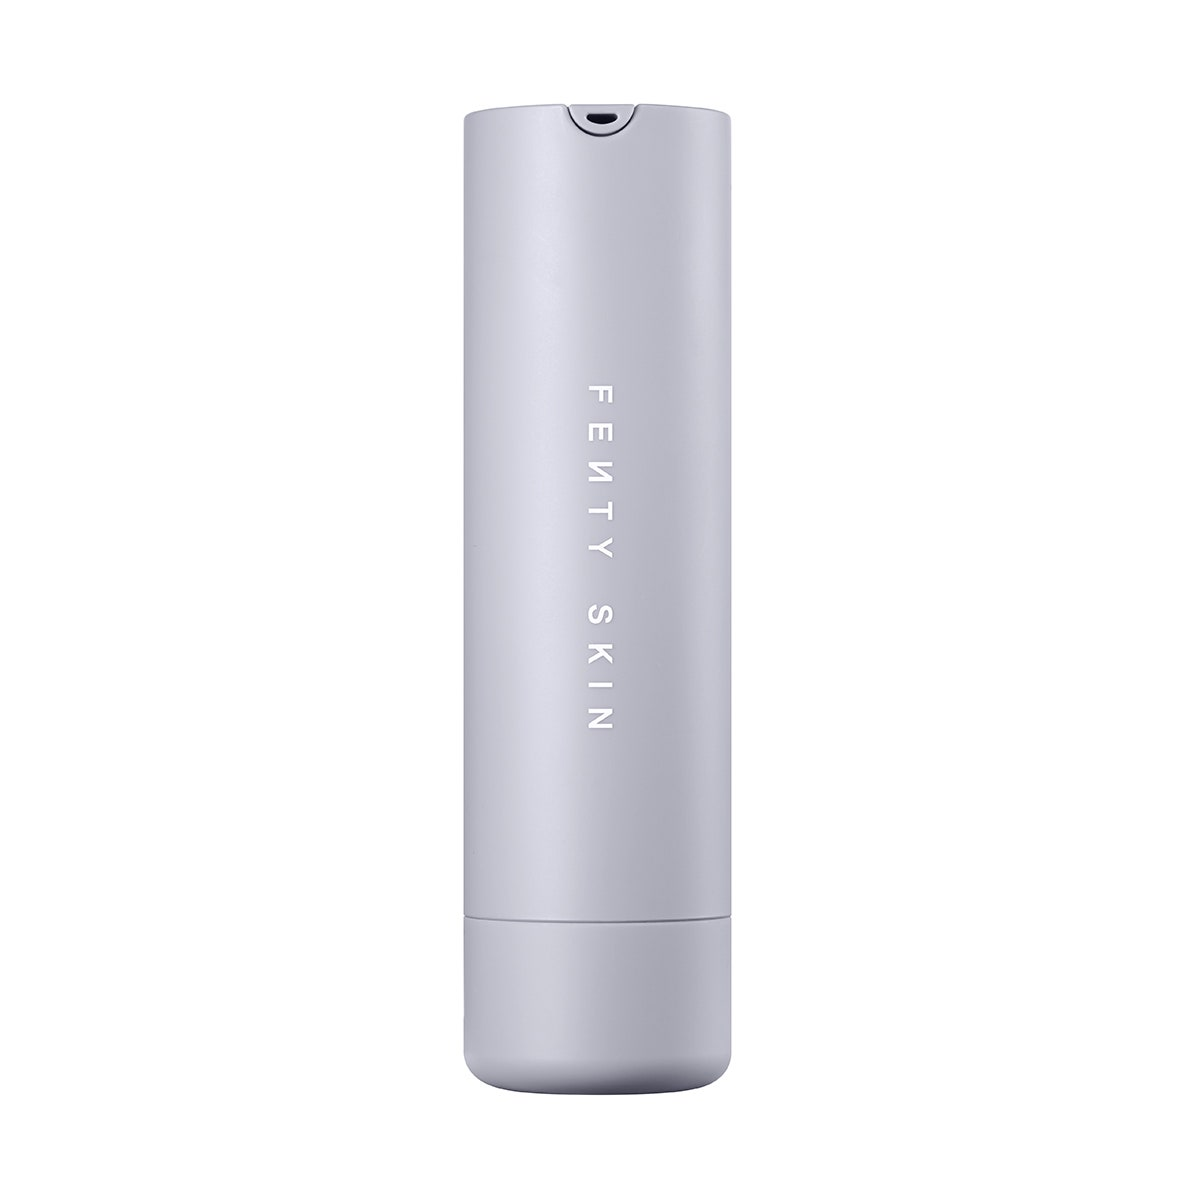 Fenty Skin-Hydra Vizor Invisible Moisturiser Broad Spectrum Spf 30 Sunscreen